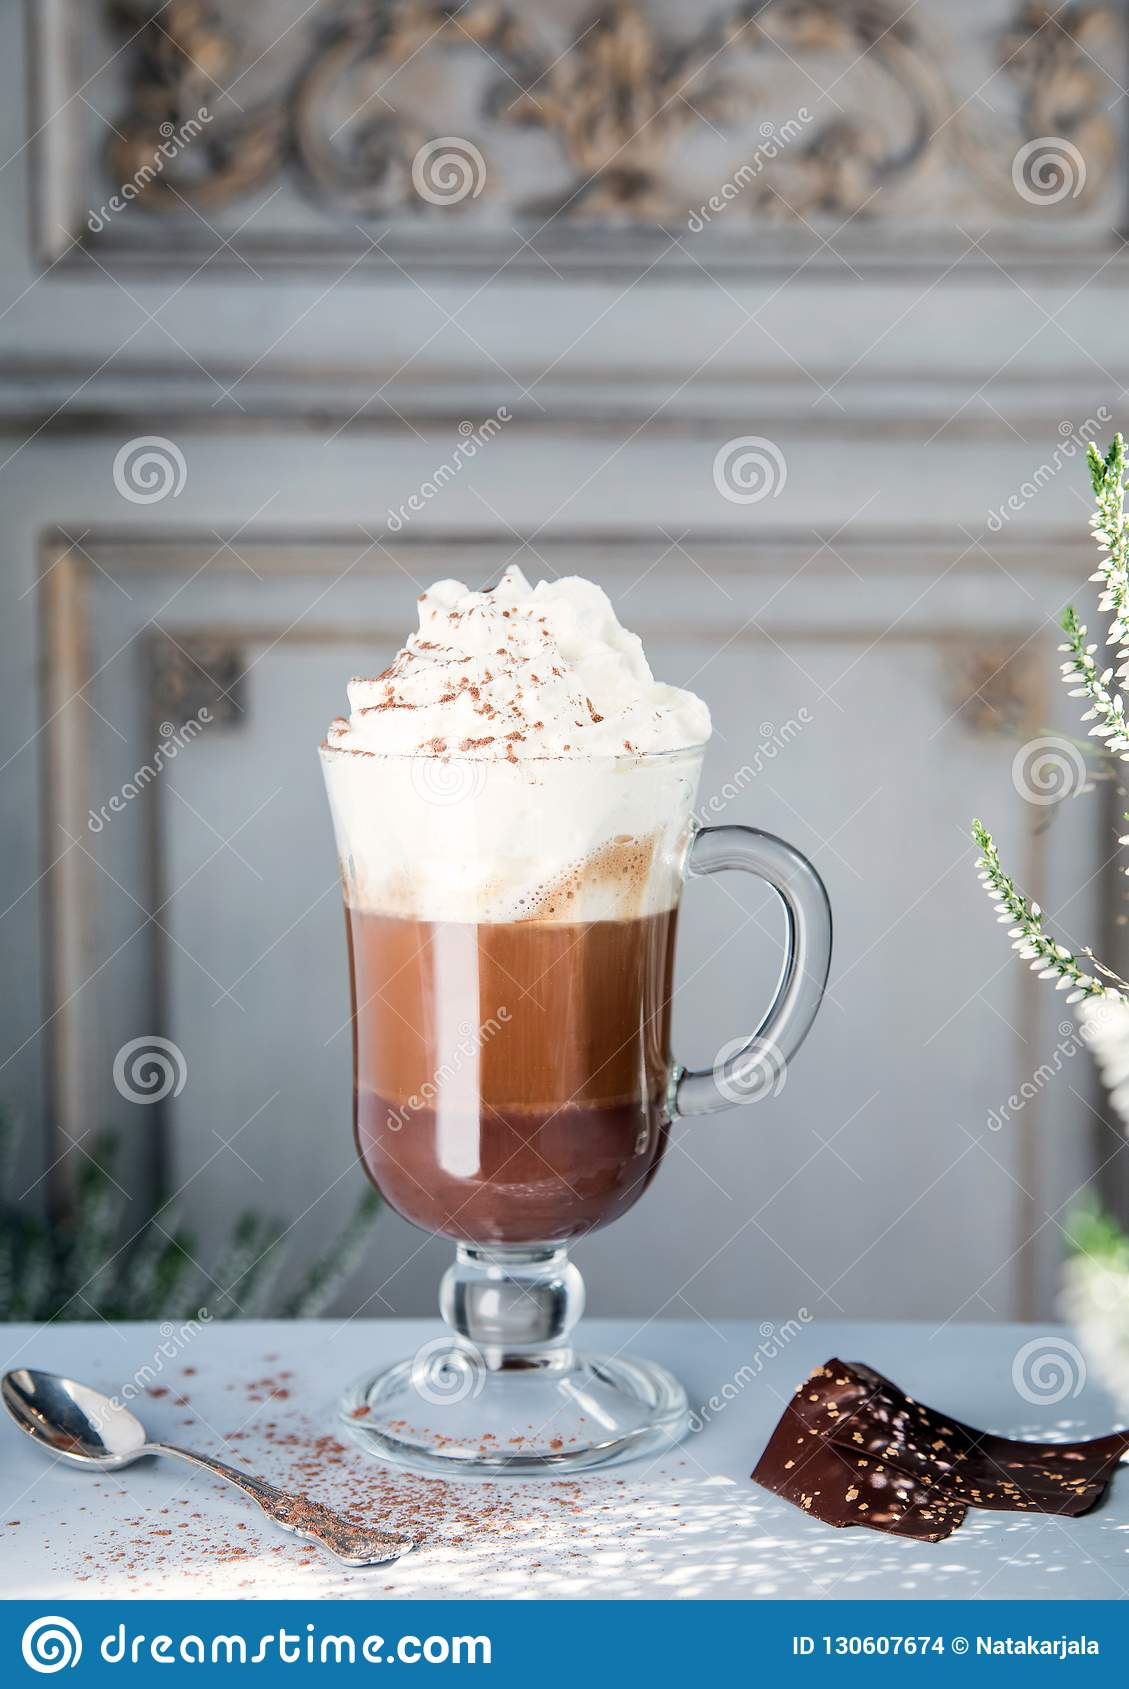 Coffee with chocolate and whipped cream in a transparent glass against the background of a vintage wall.